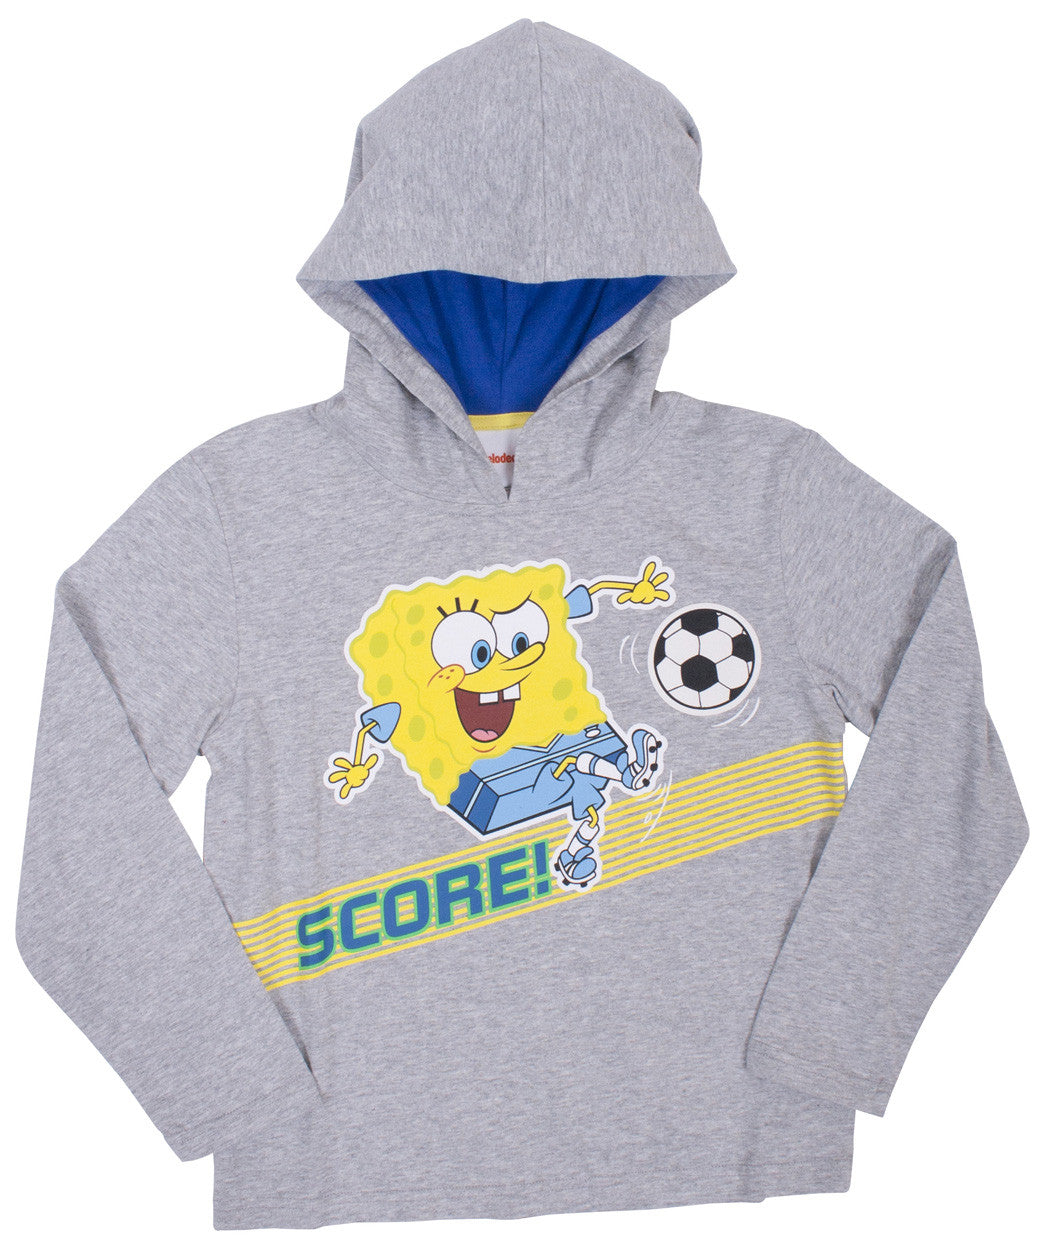 SpongeBob SquarePants Football Pullover